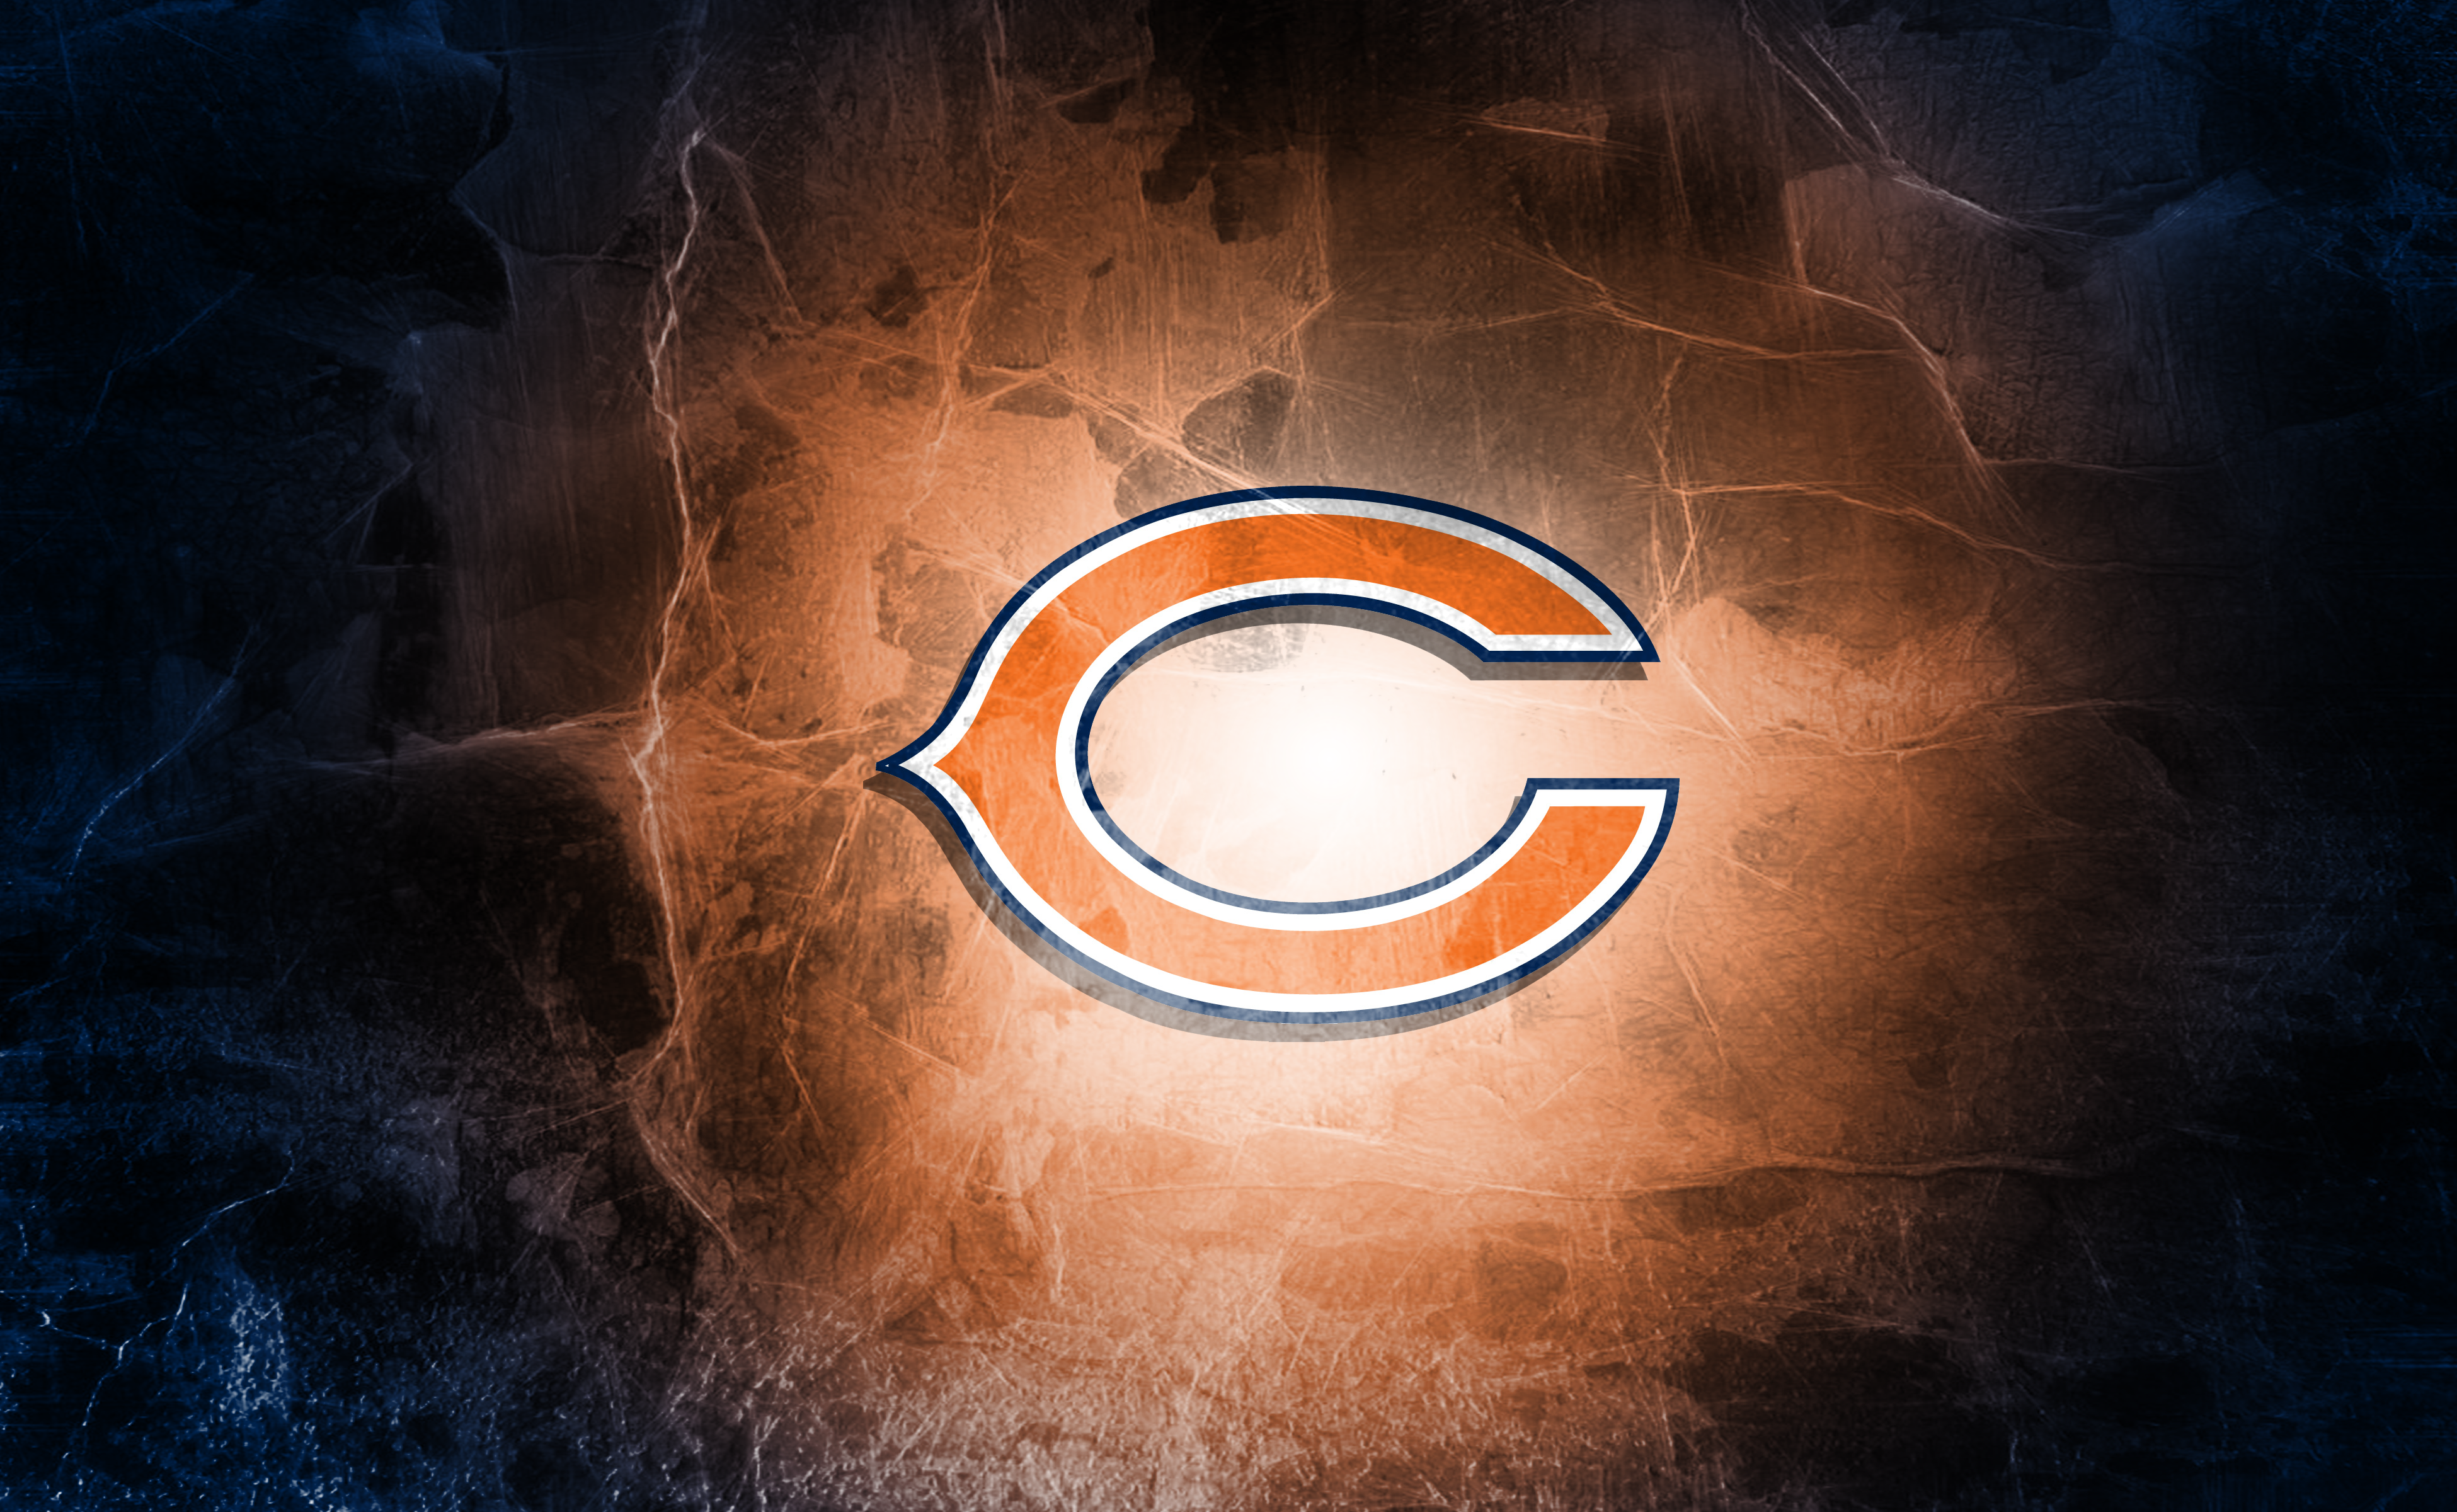 Chicago Bears Football Team Logo Wallpapers HD 3900x2400